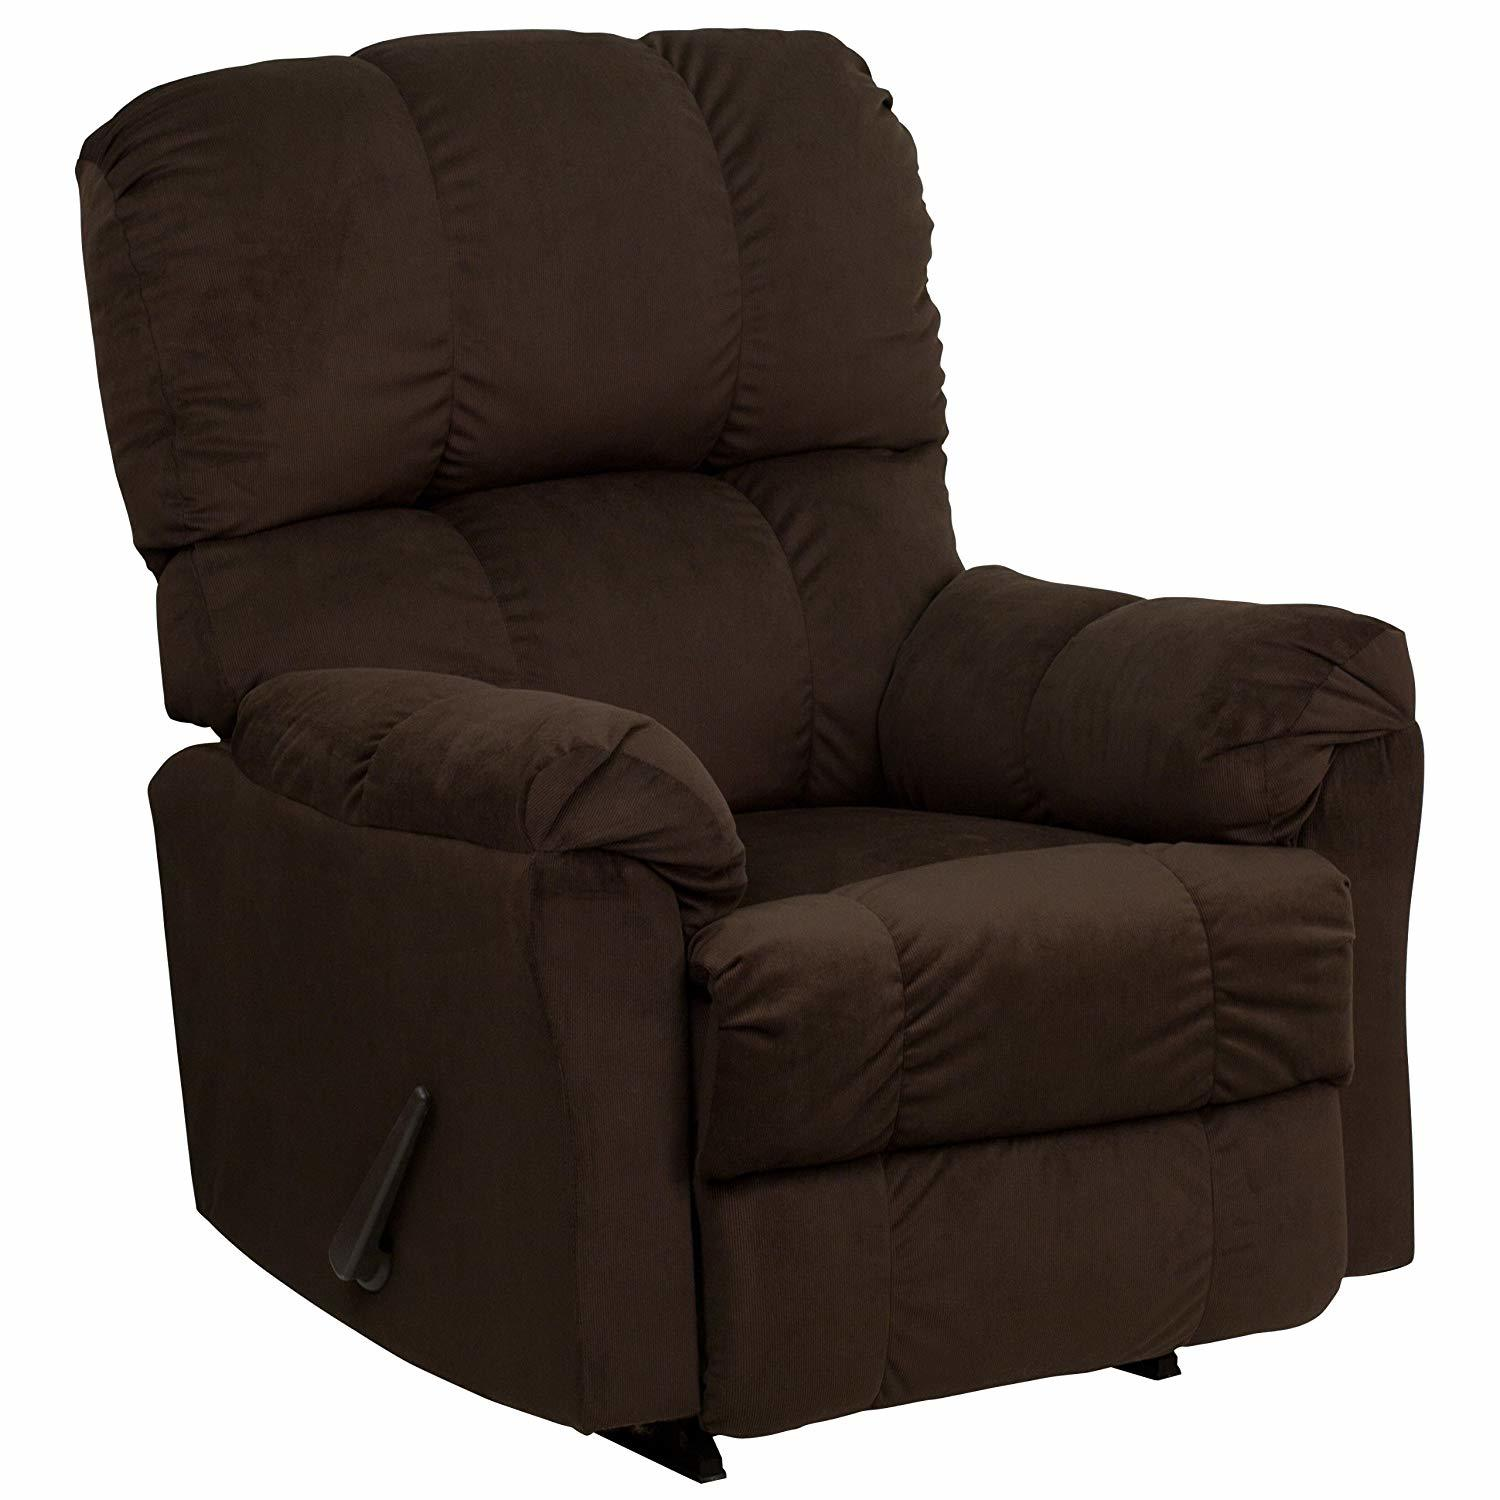 Cheapest Recliners With Good Quality: Critical Reviews Of